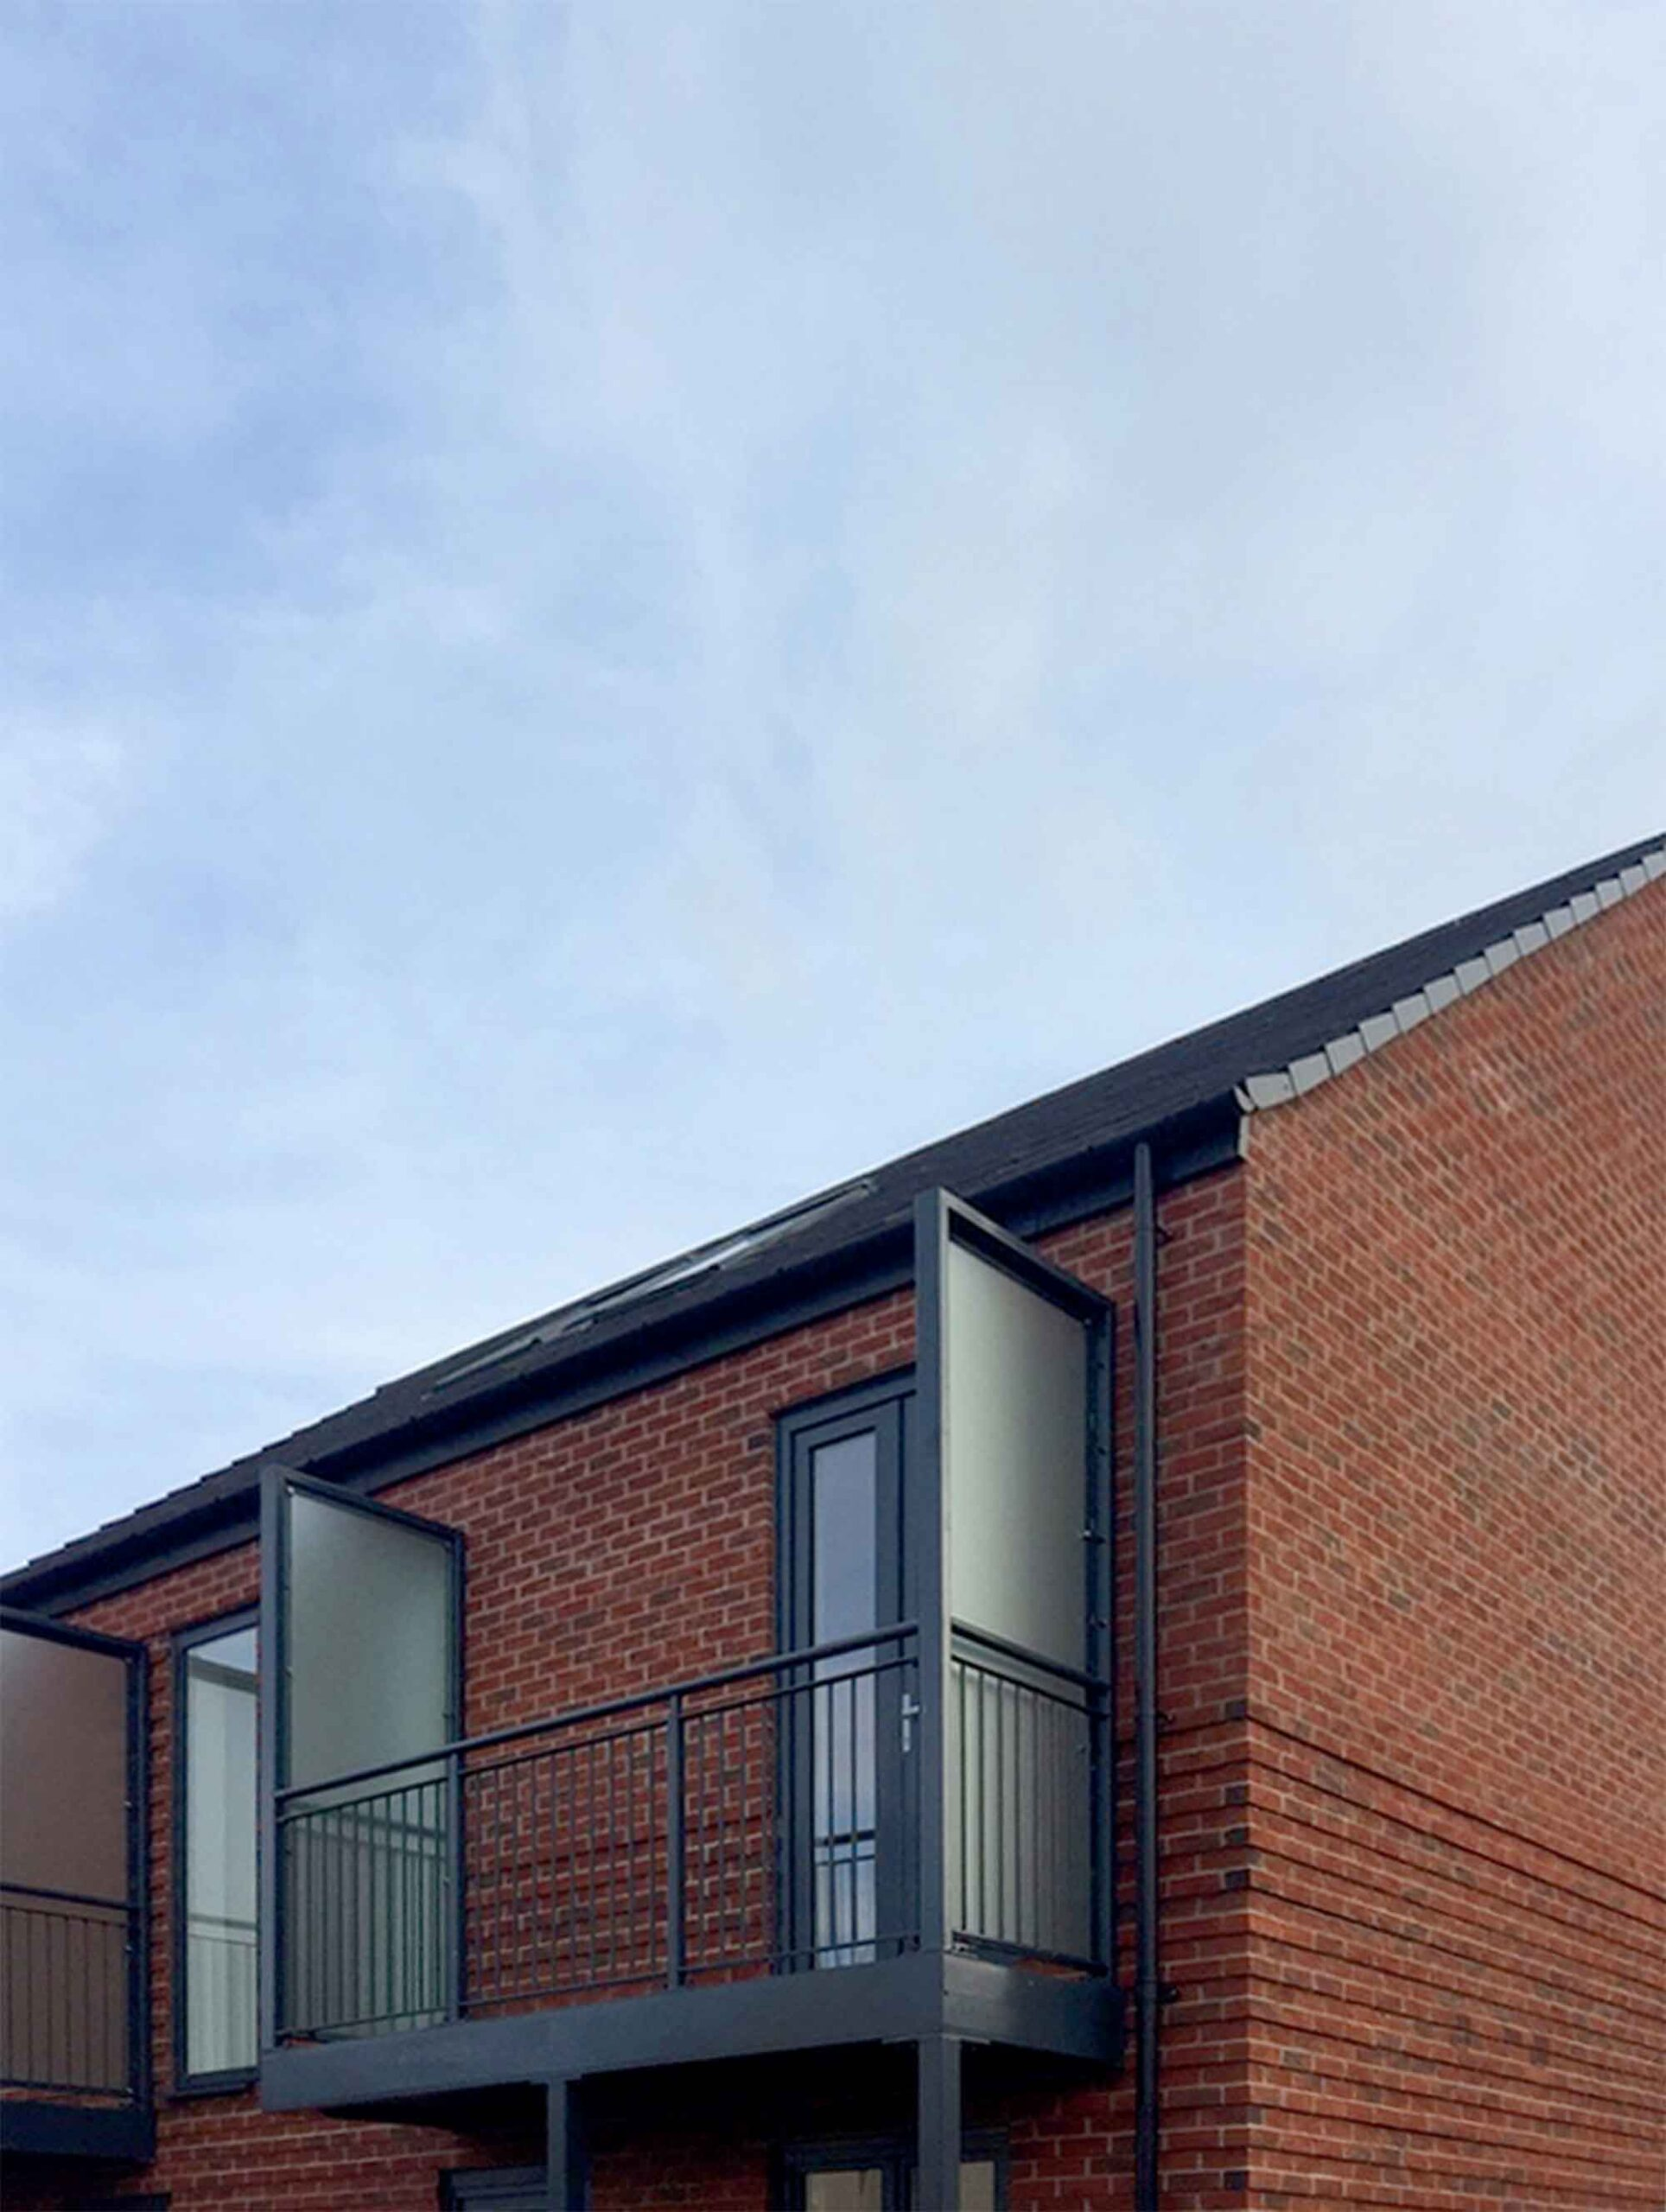 taylor-wimpey-openstudio-architects-exterior-detail